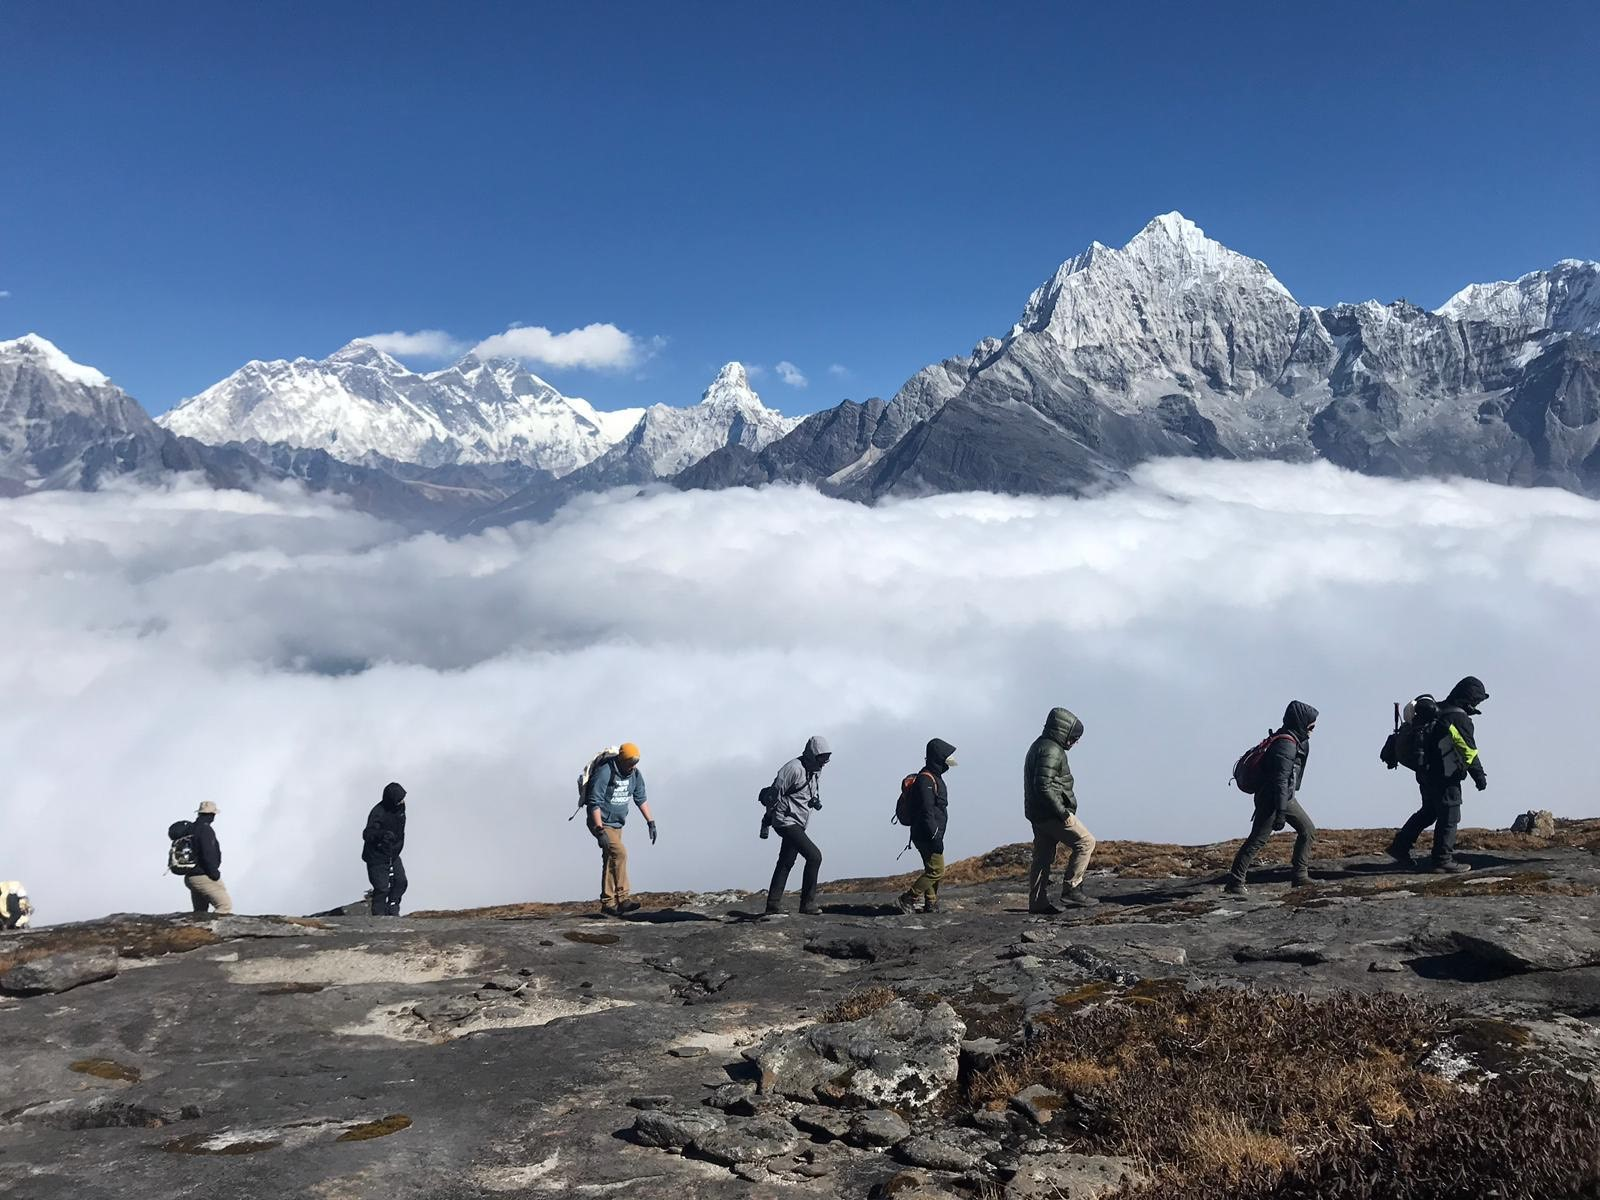 A group of Microsoft employees climb along a ridge withe the Himilayan Mountains in the background. They are in a single file line walking on a rock ridge.